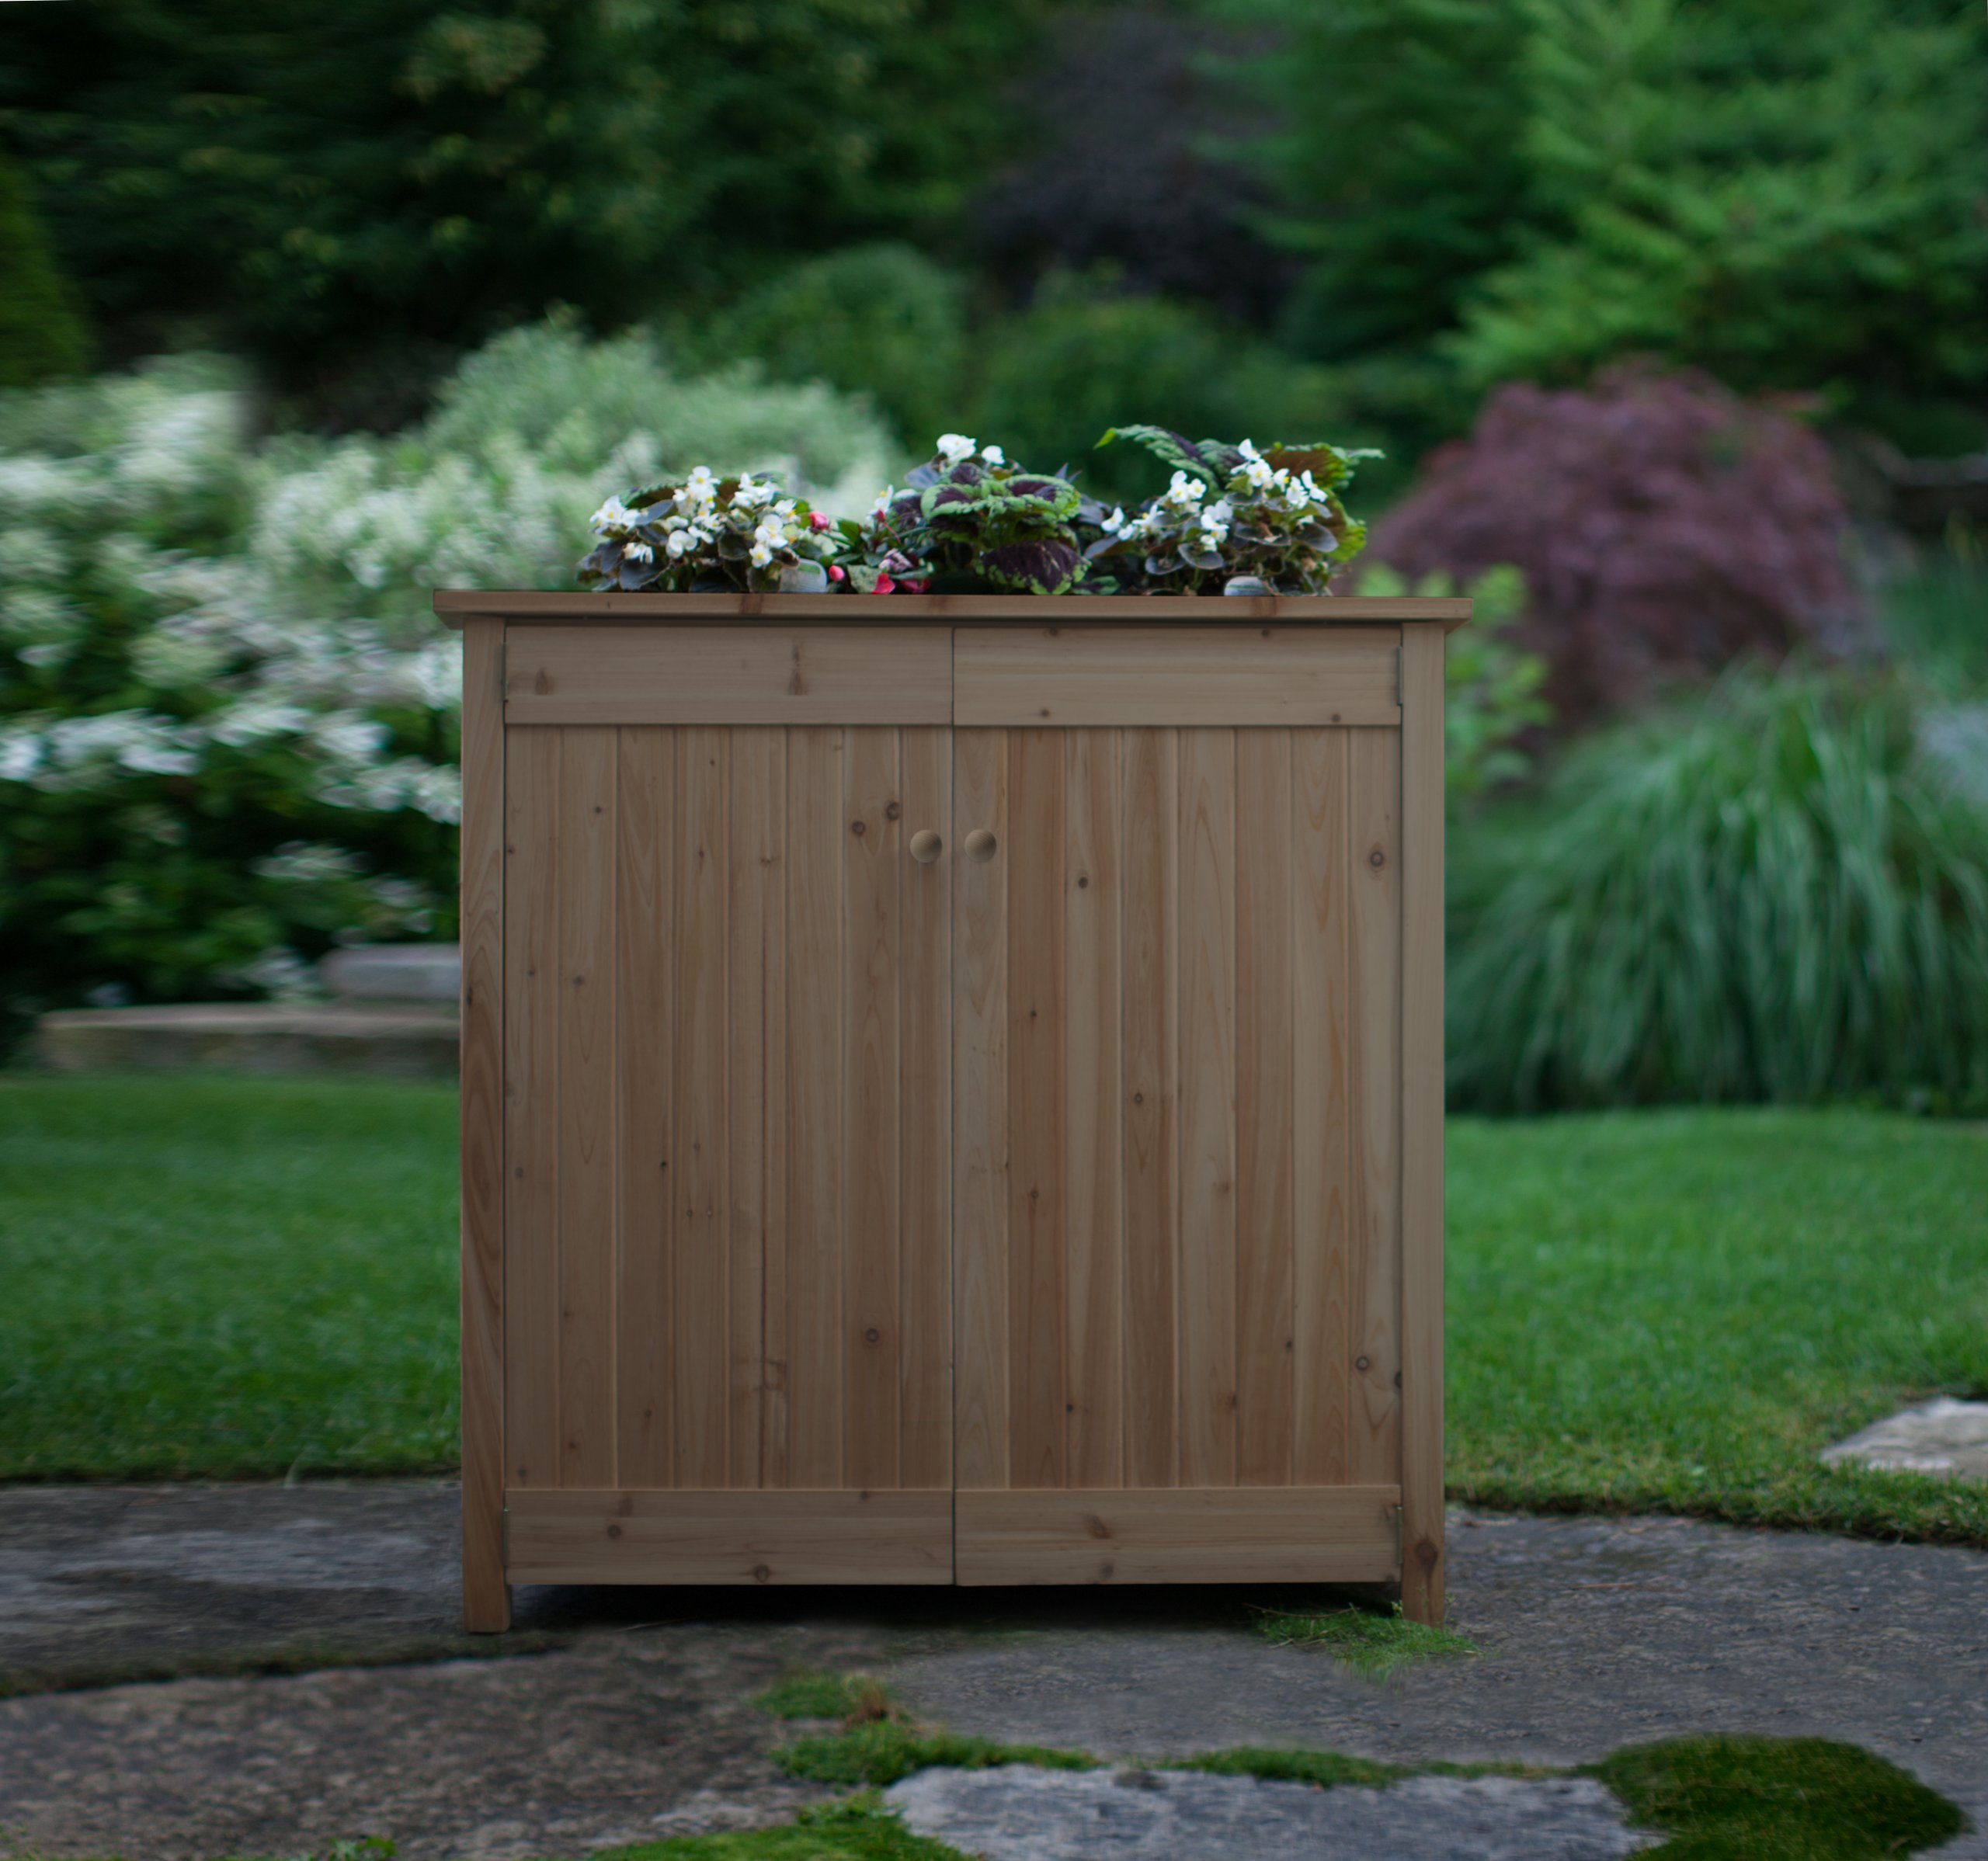 Algreen Products Ergogarden Deck Box and Elevated Planter by Algreen